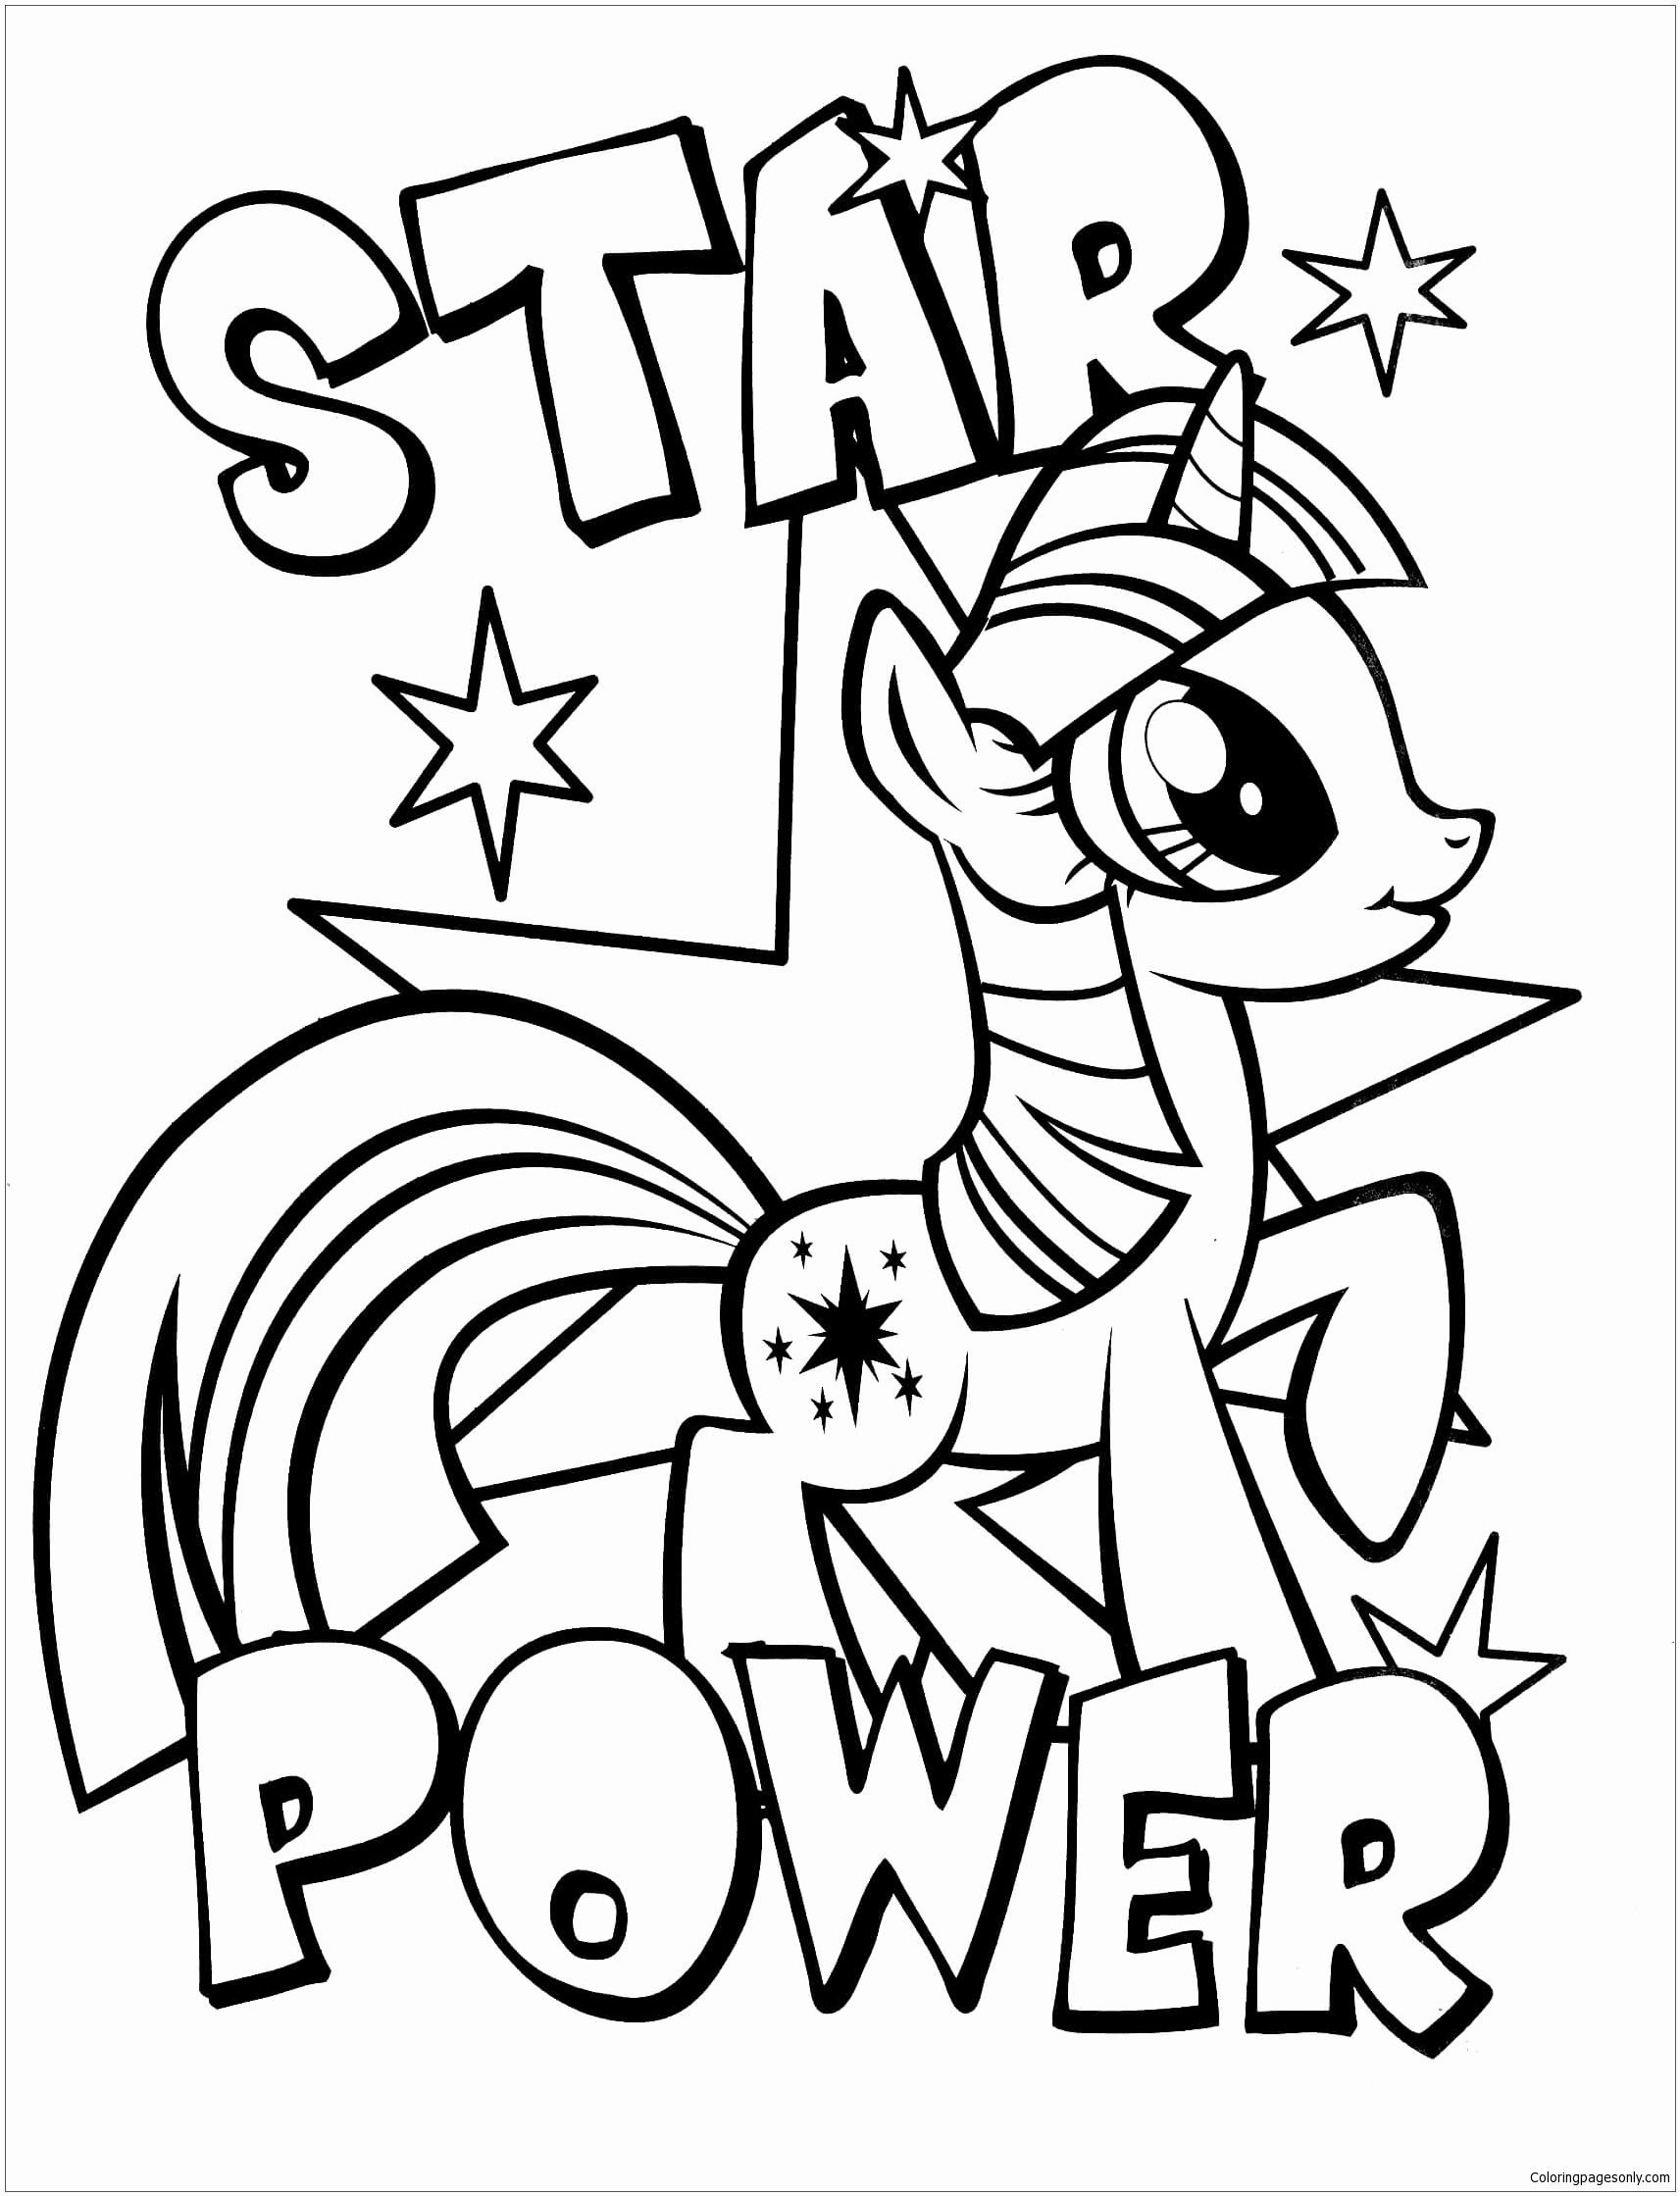 My Little Pony Coloring Pages For Kids Blank In 2020 My Little Pony Coloring Unicorn Coloring Pages My Little Pony Unicorn